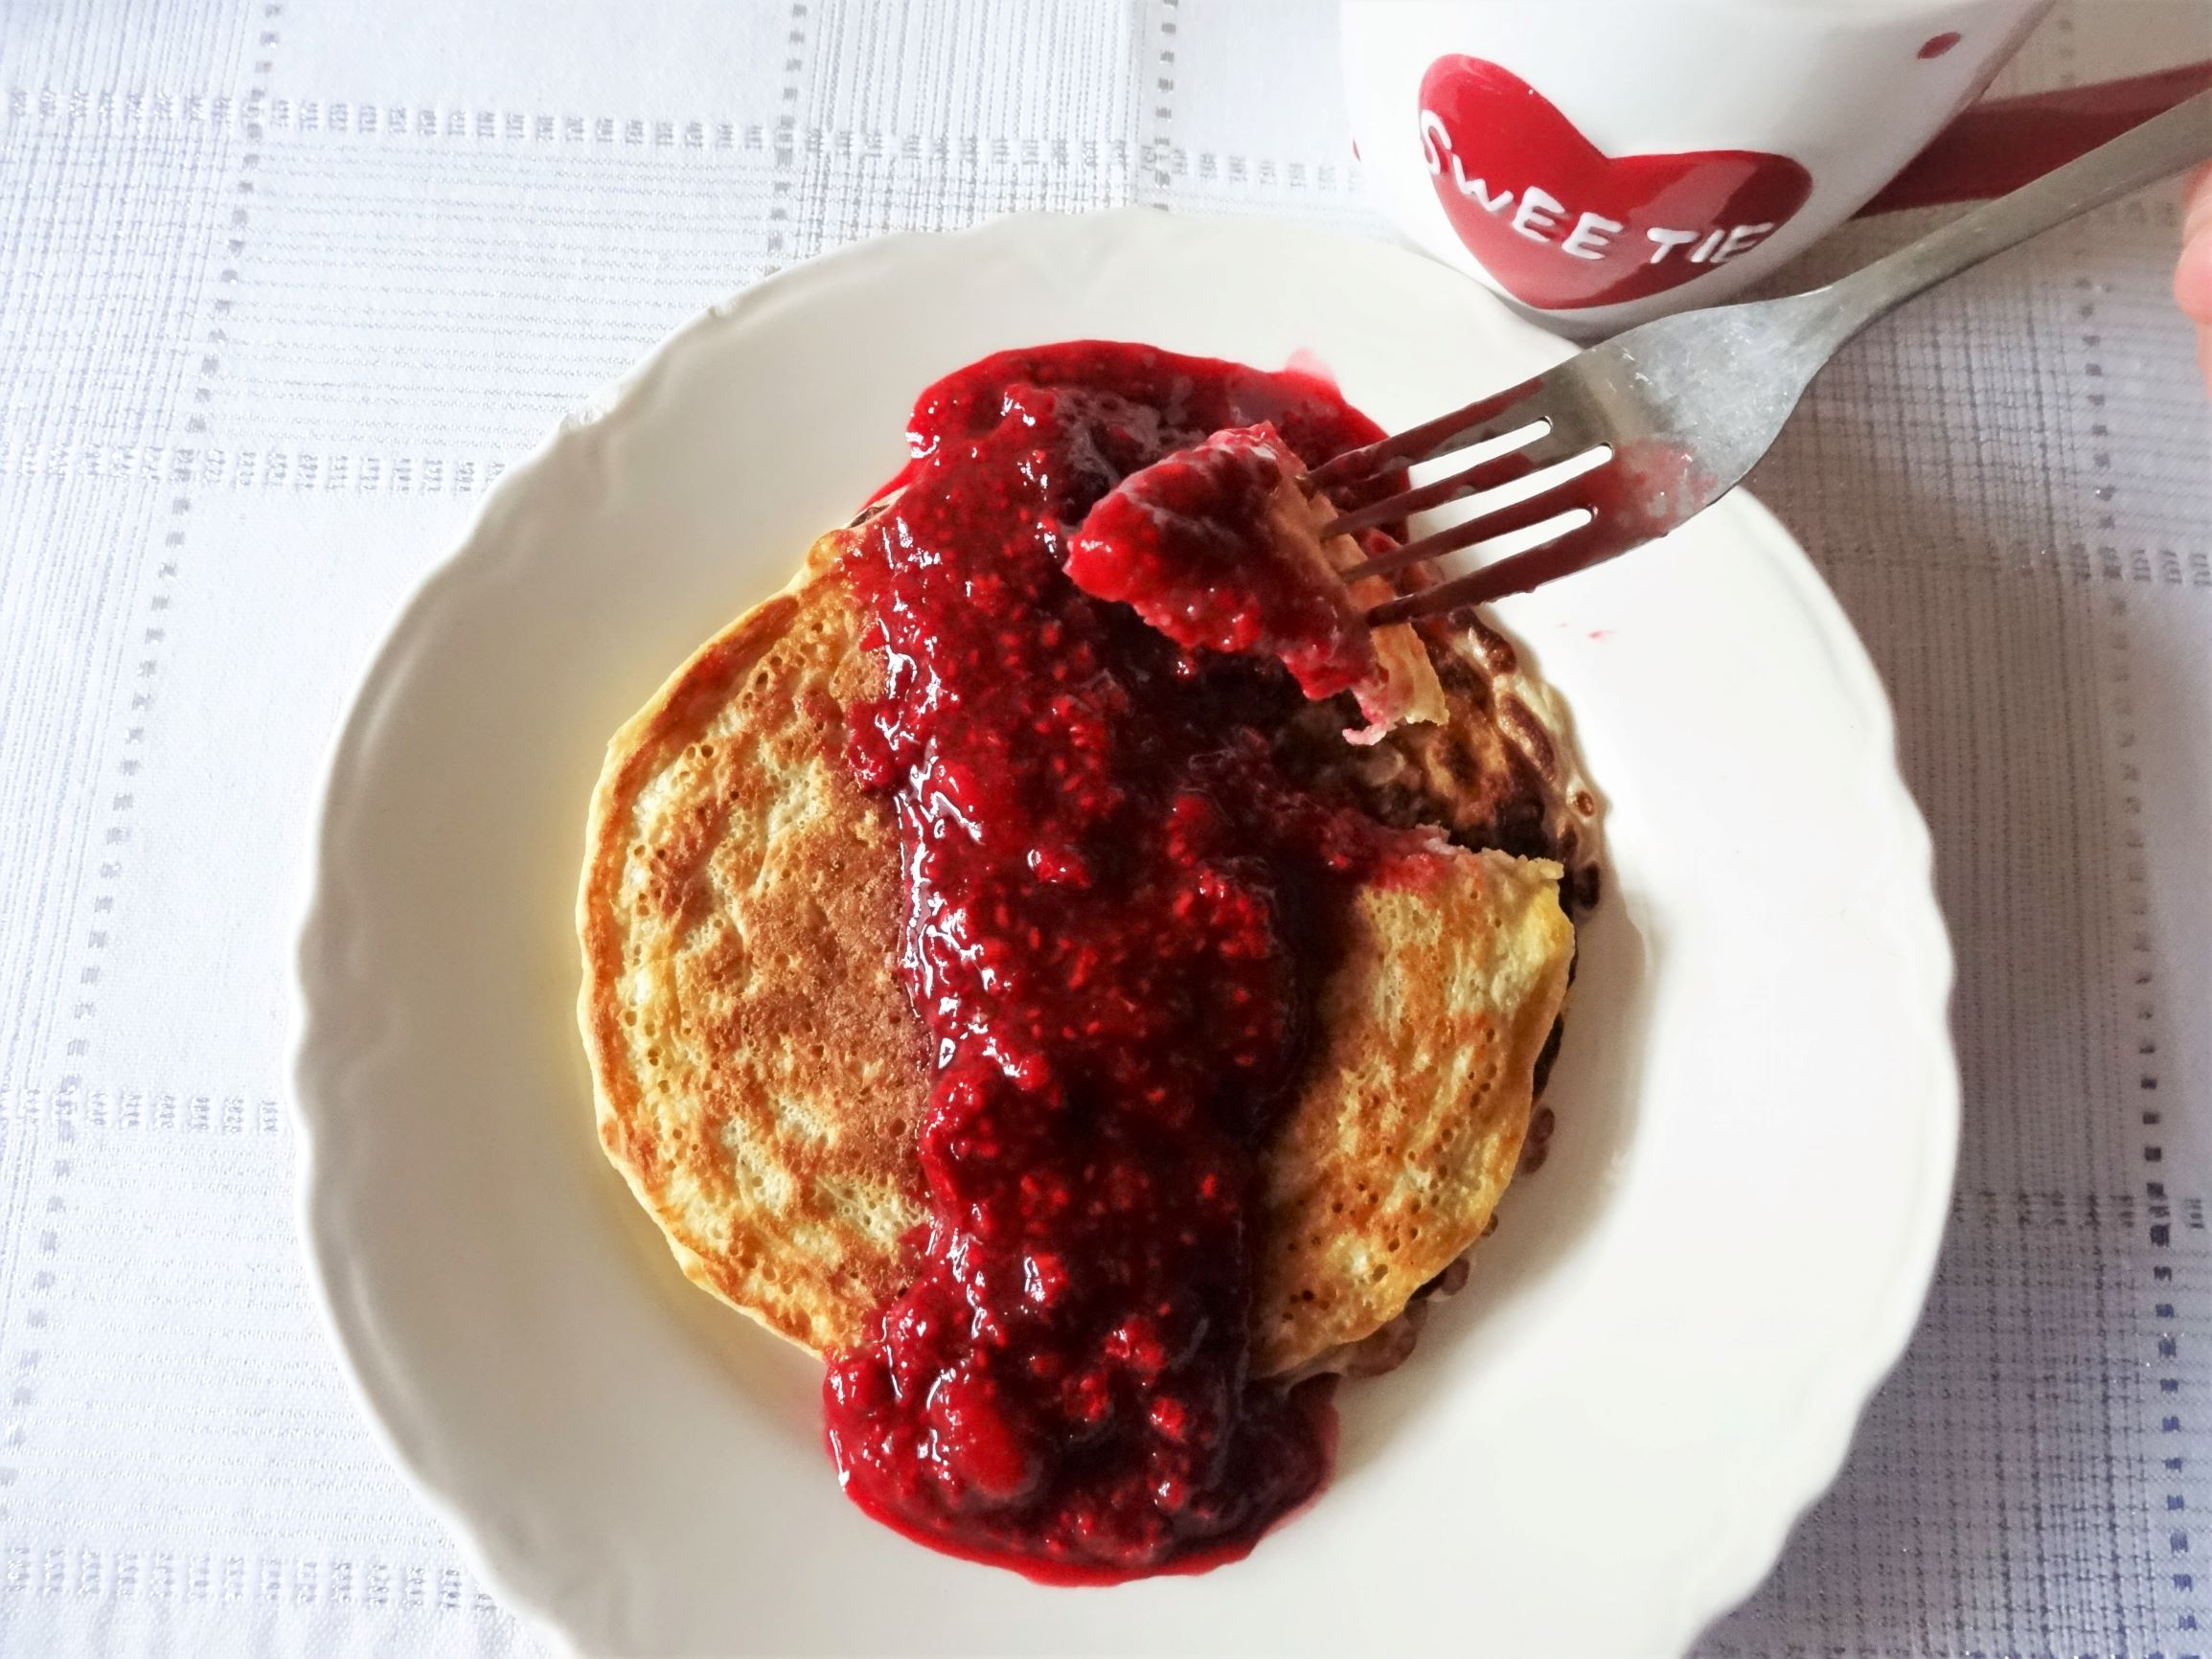 Me Oatmeal Pancakes with Raspberry Syrup, Fork and Hug Me Coffee Cup